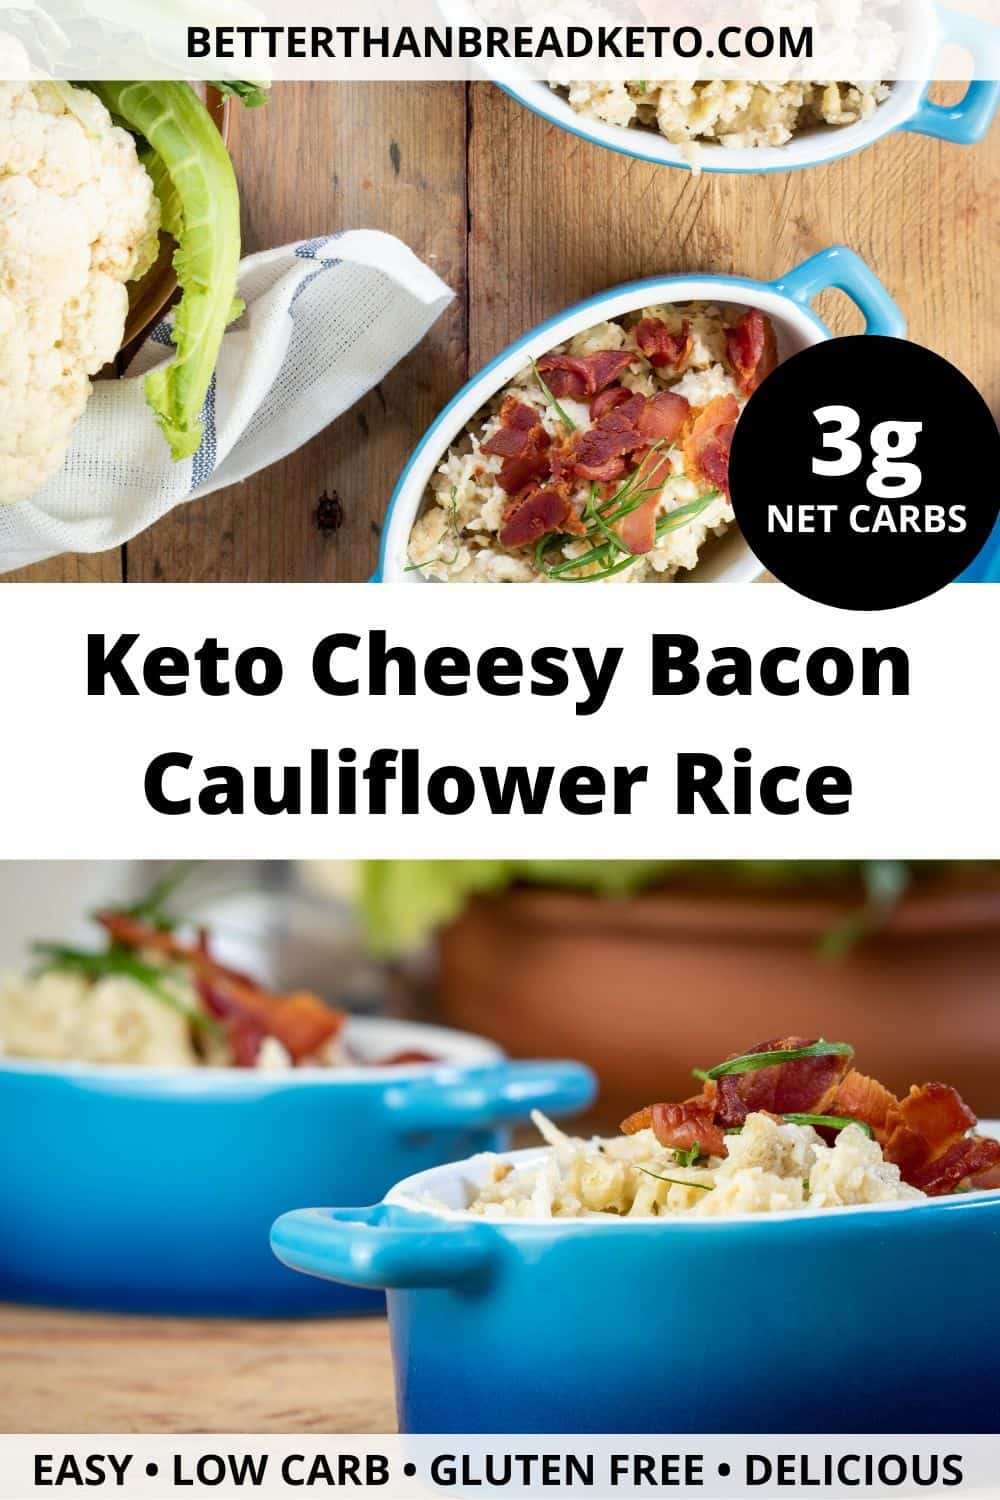 Keto Cheesy Bacon Cauliflower Rice